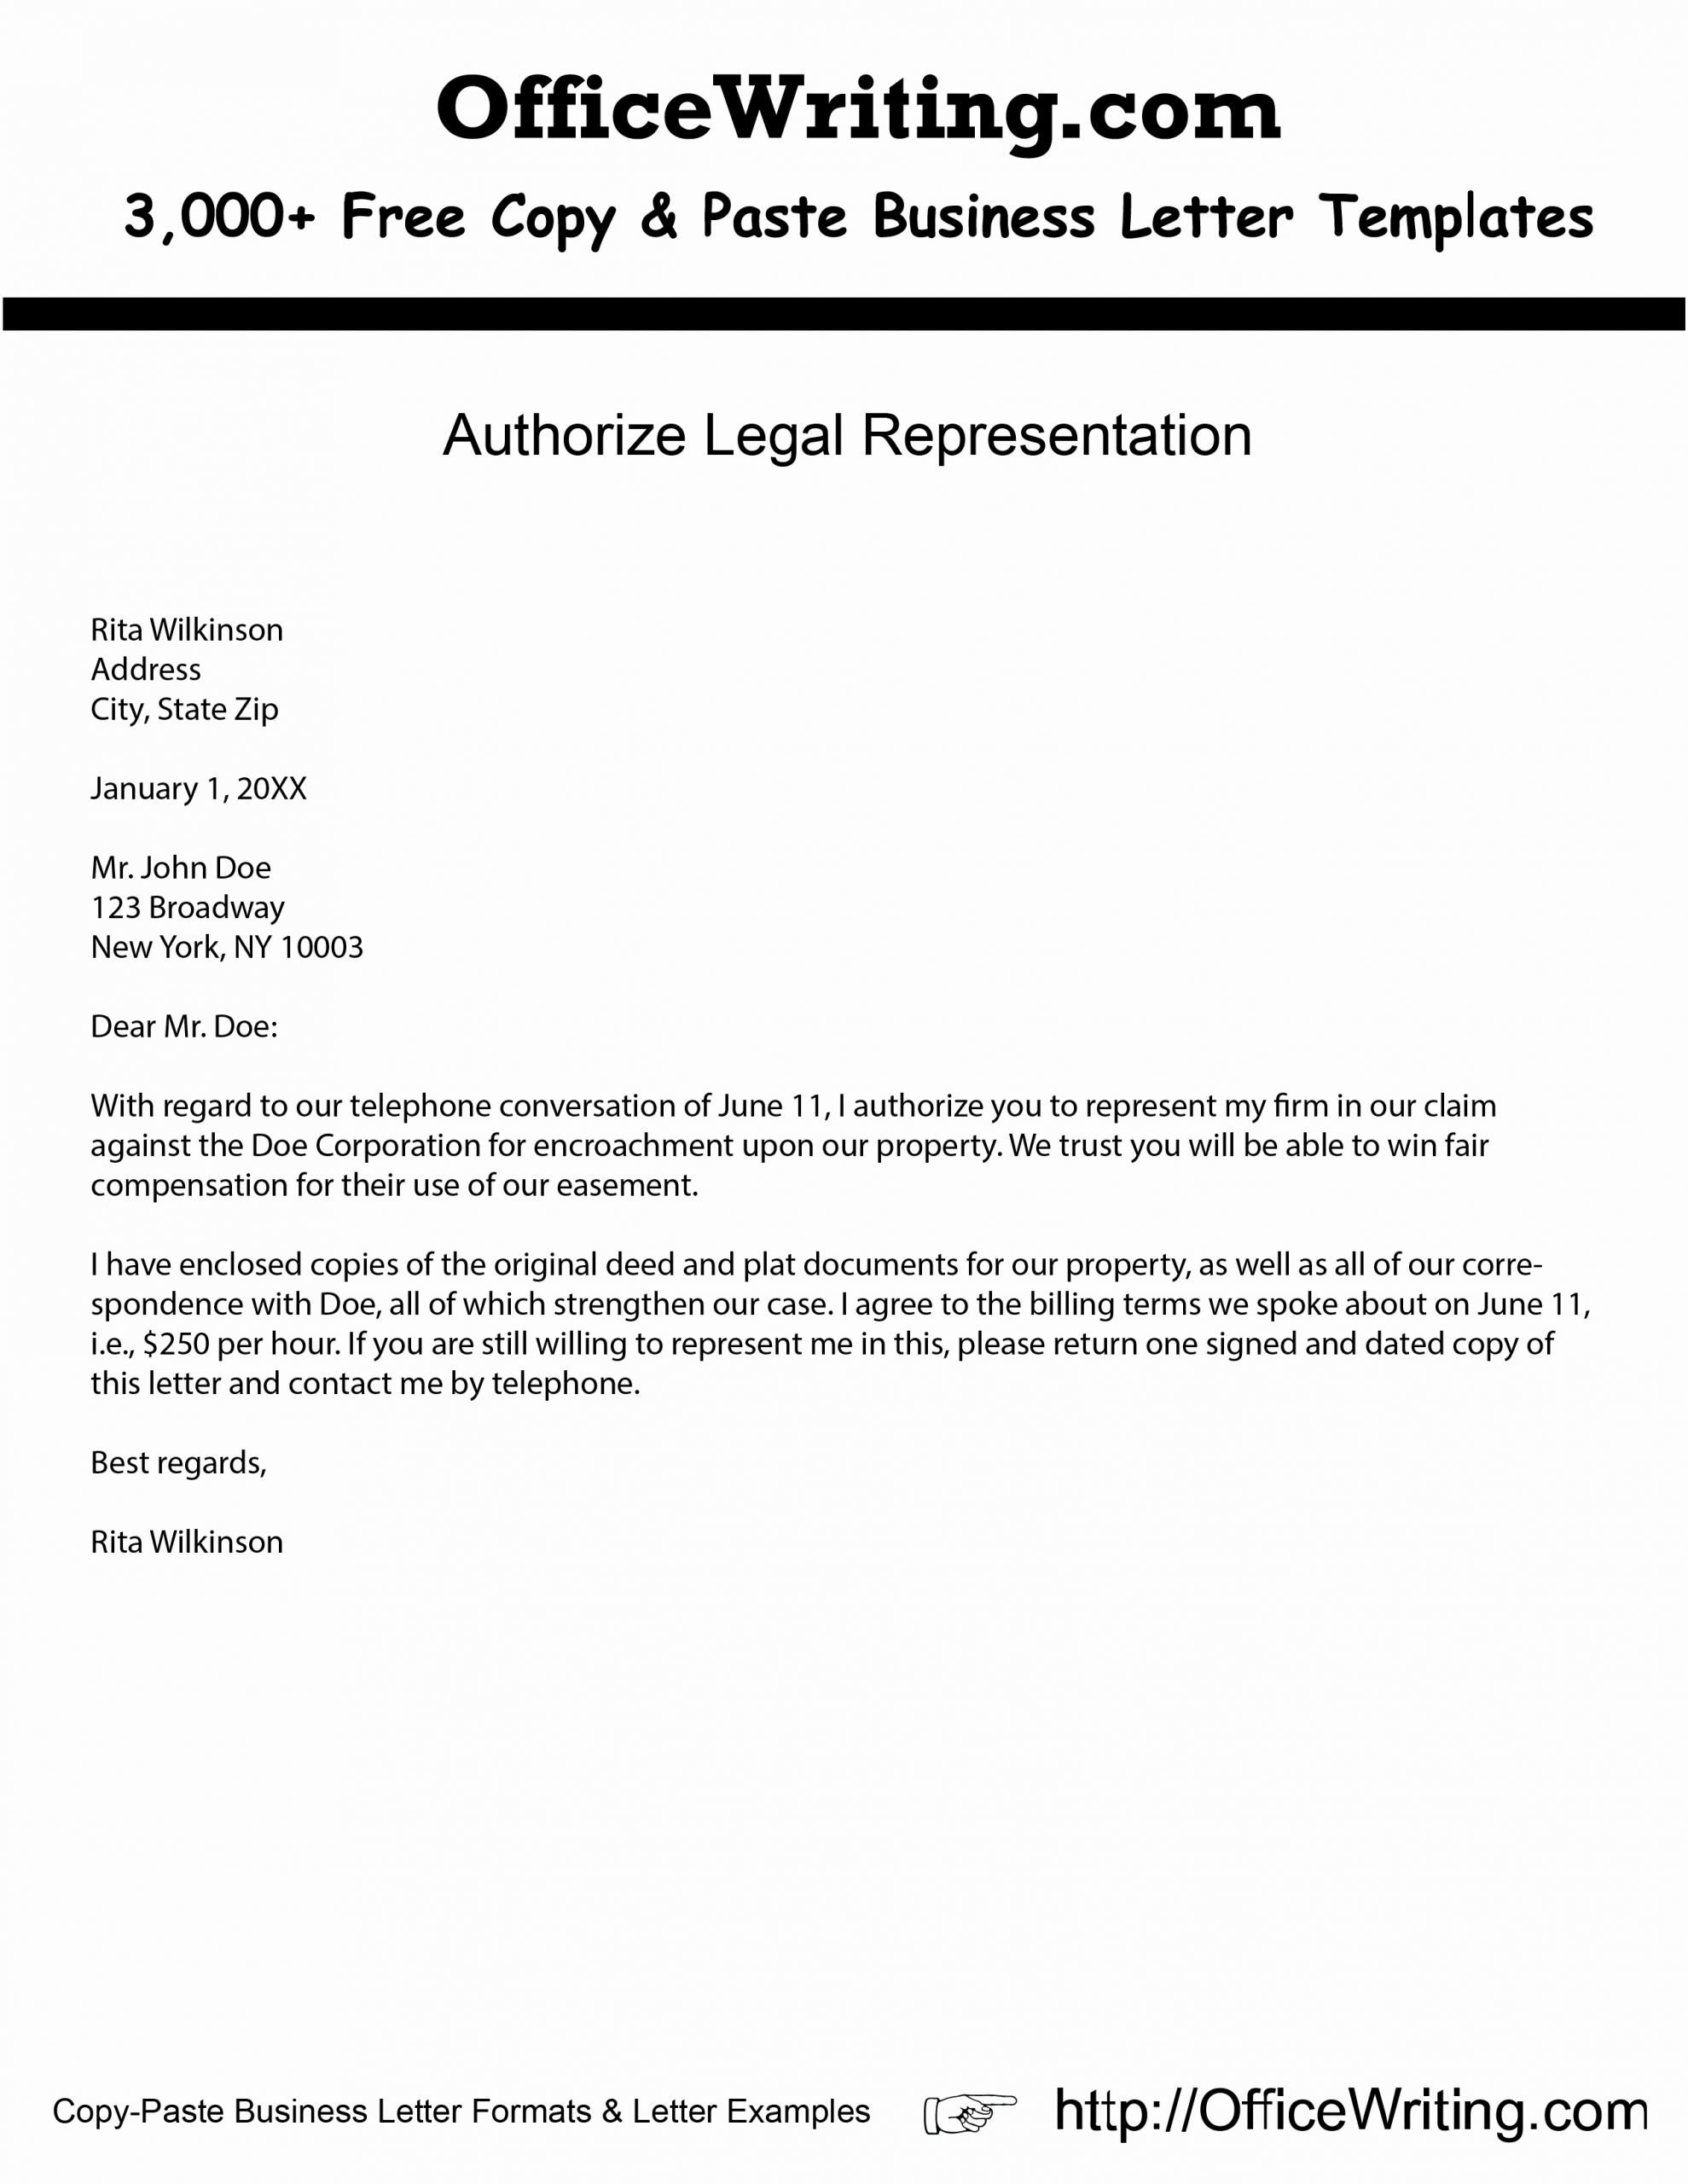 Sample Representation Letter Lovely Authorize Legal Representation Download Free Business